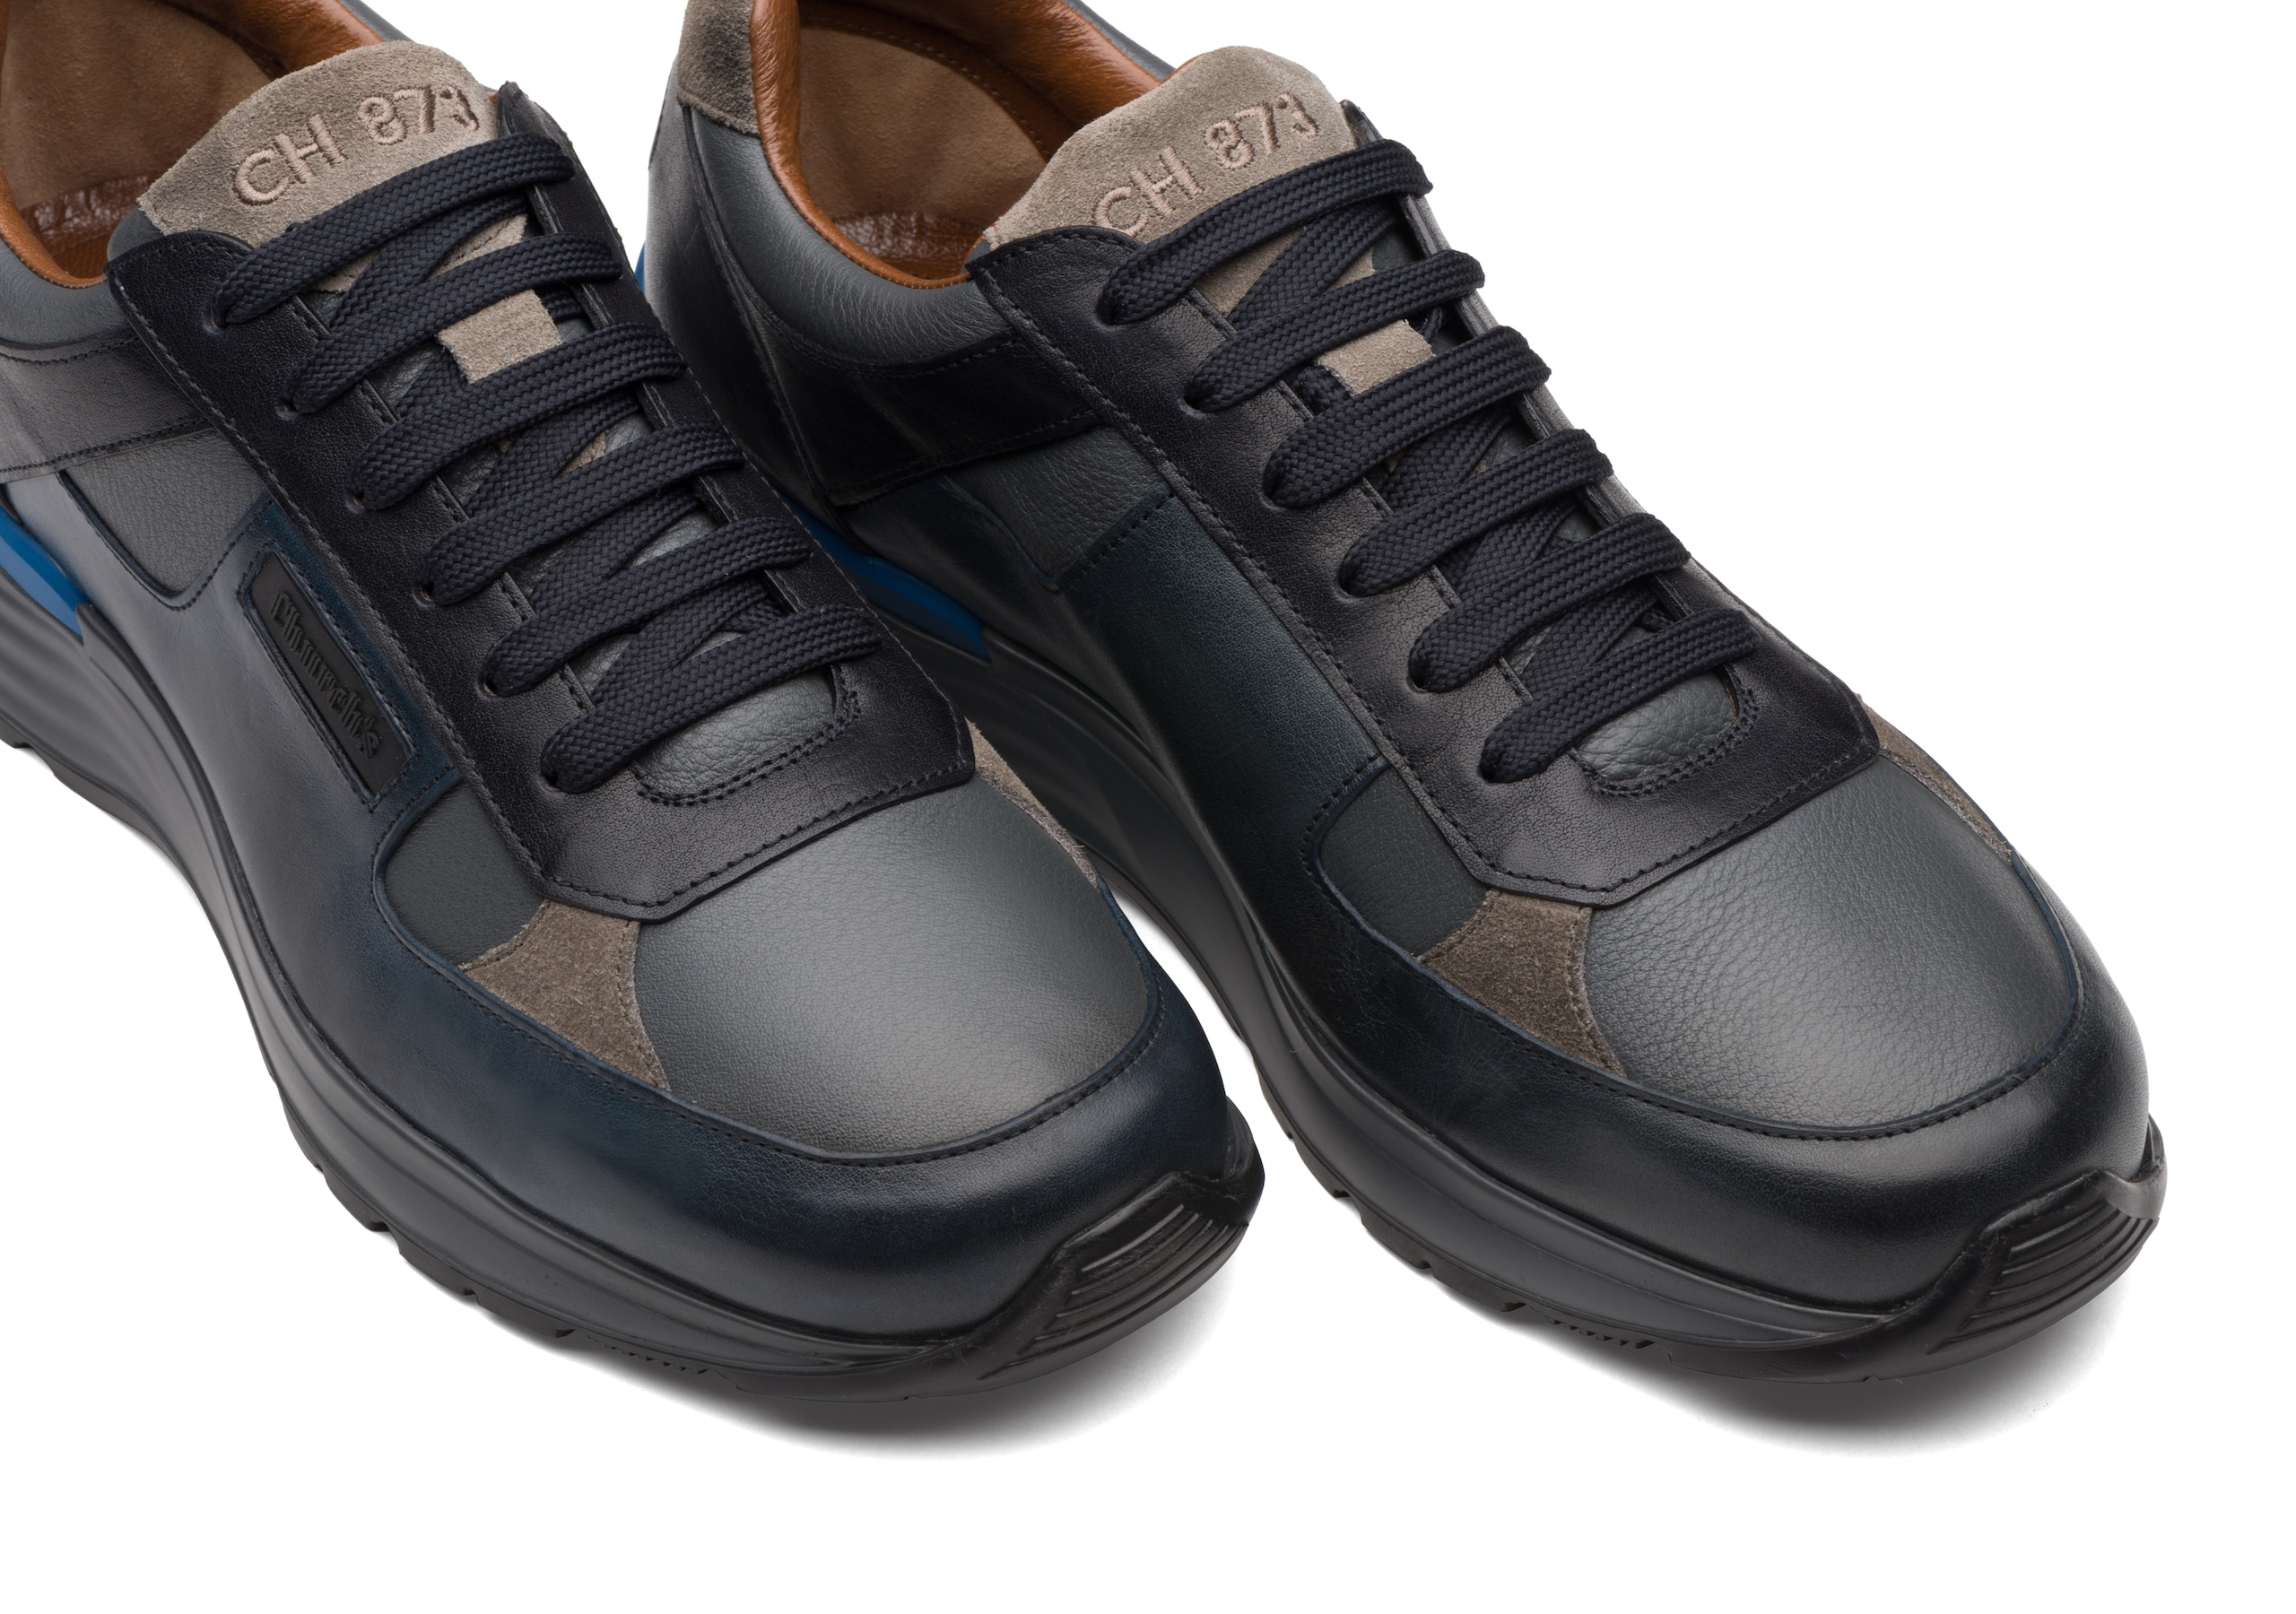 Ch873 Church's Vintage Calf Leather Retro Sneaker Blue